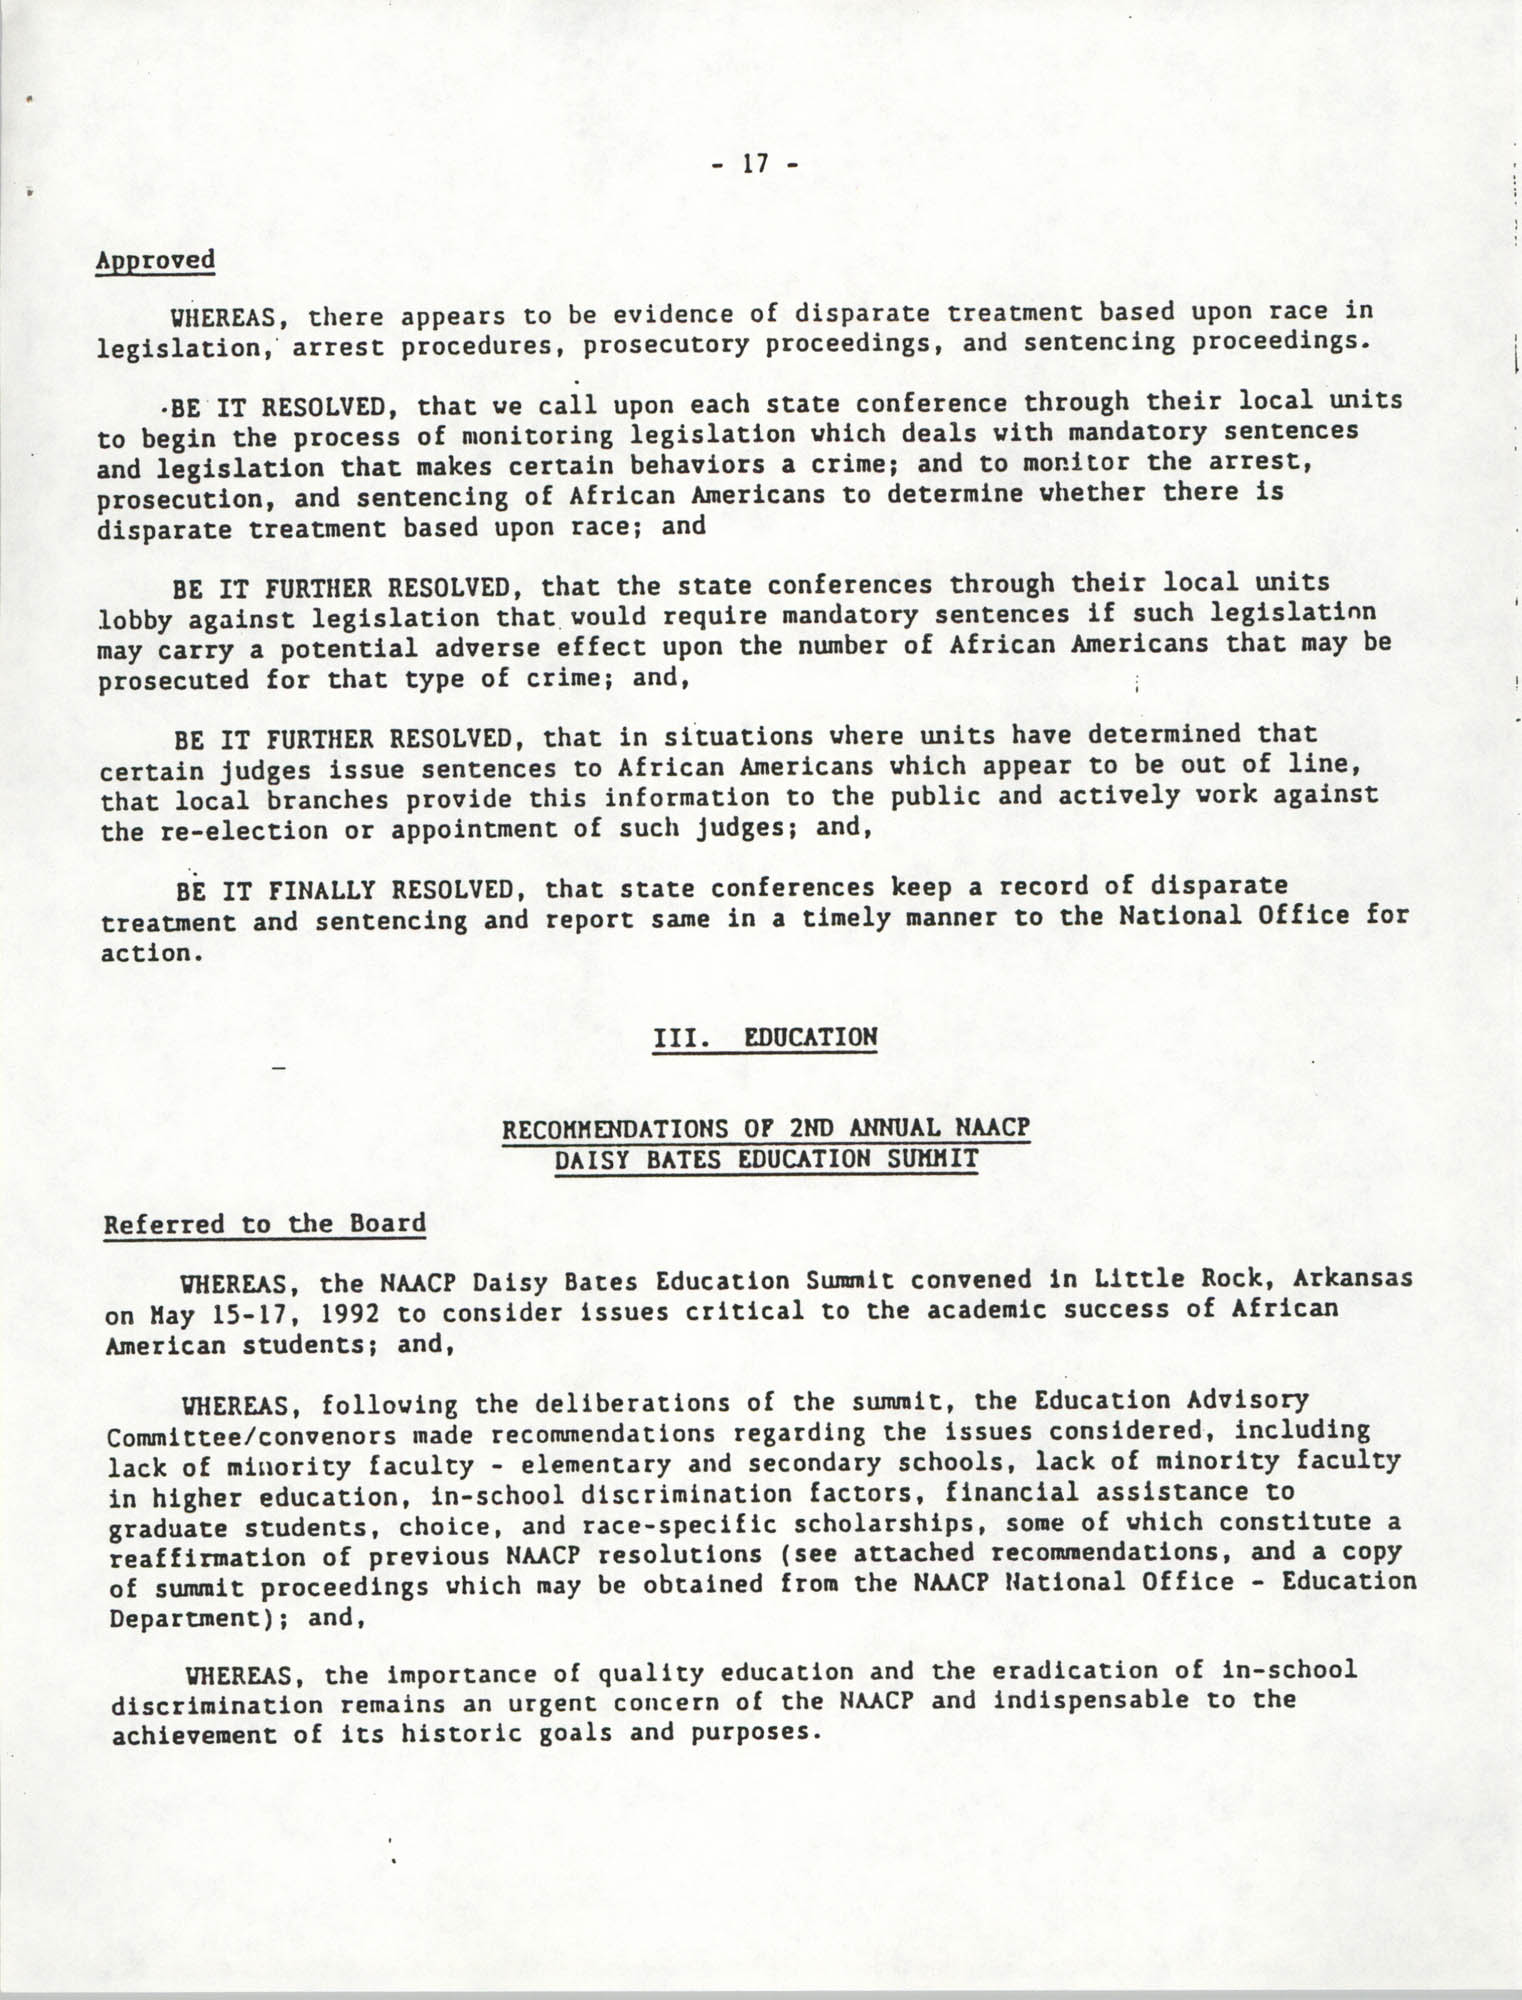 Education Resolutions 1993